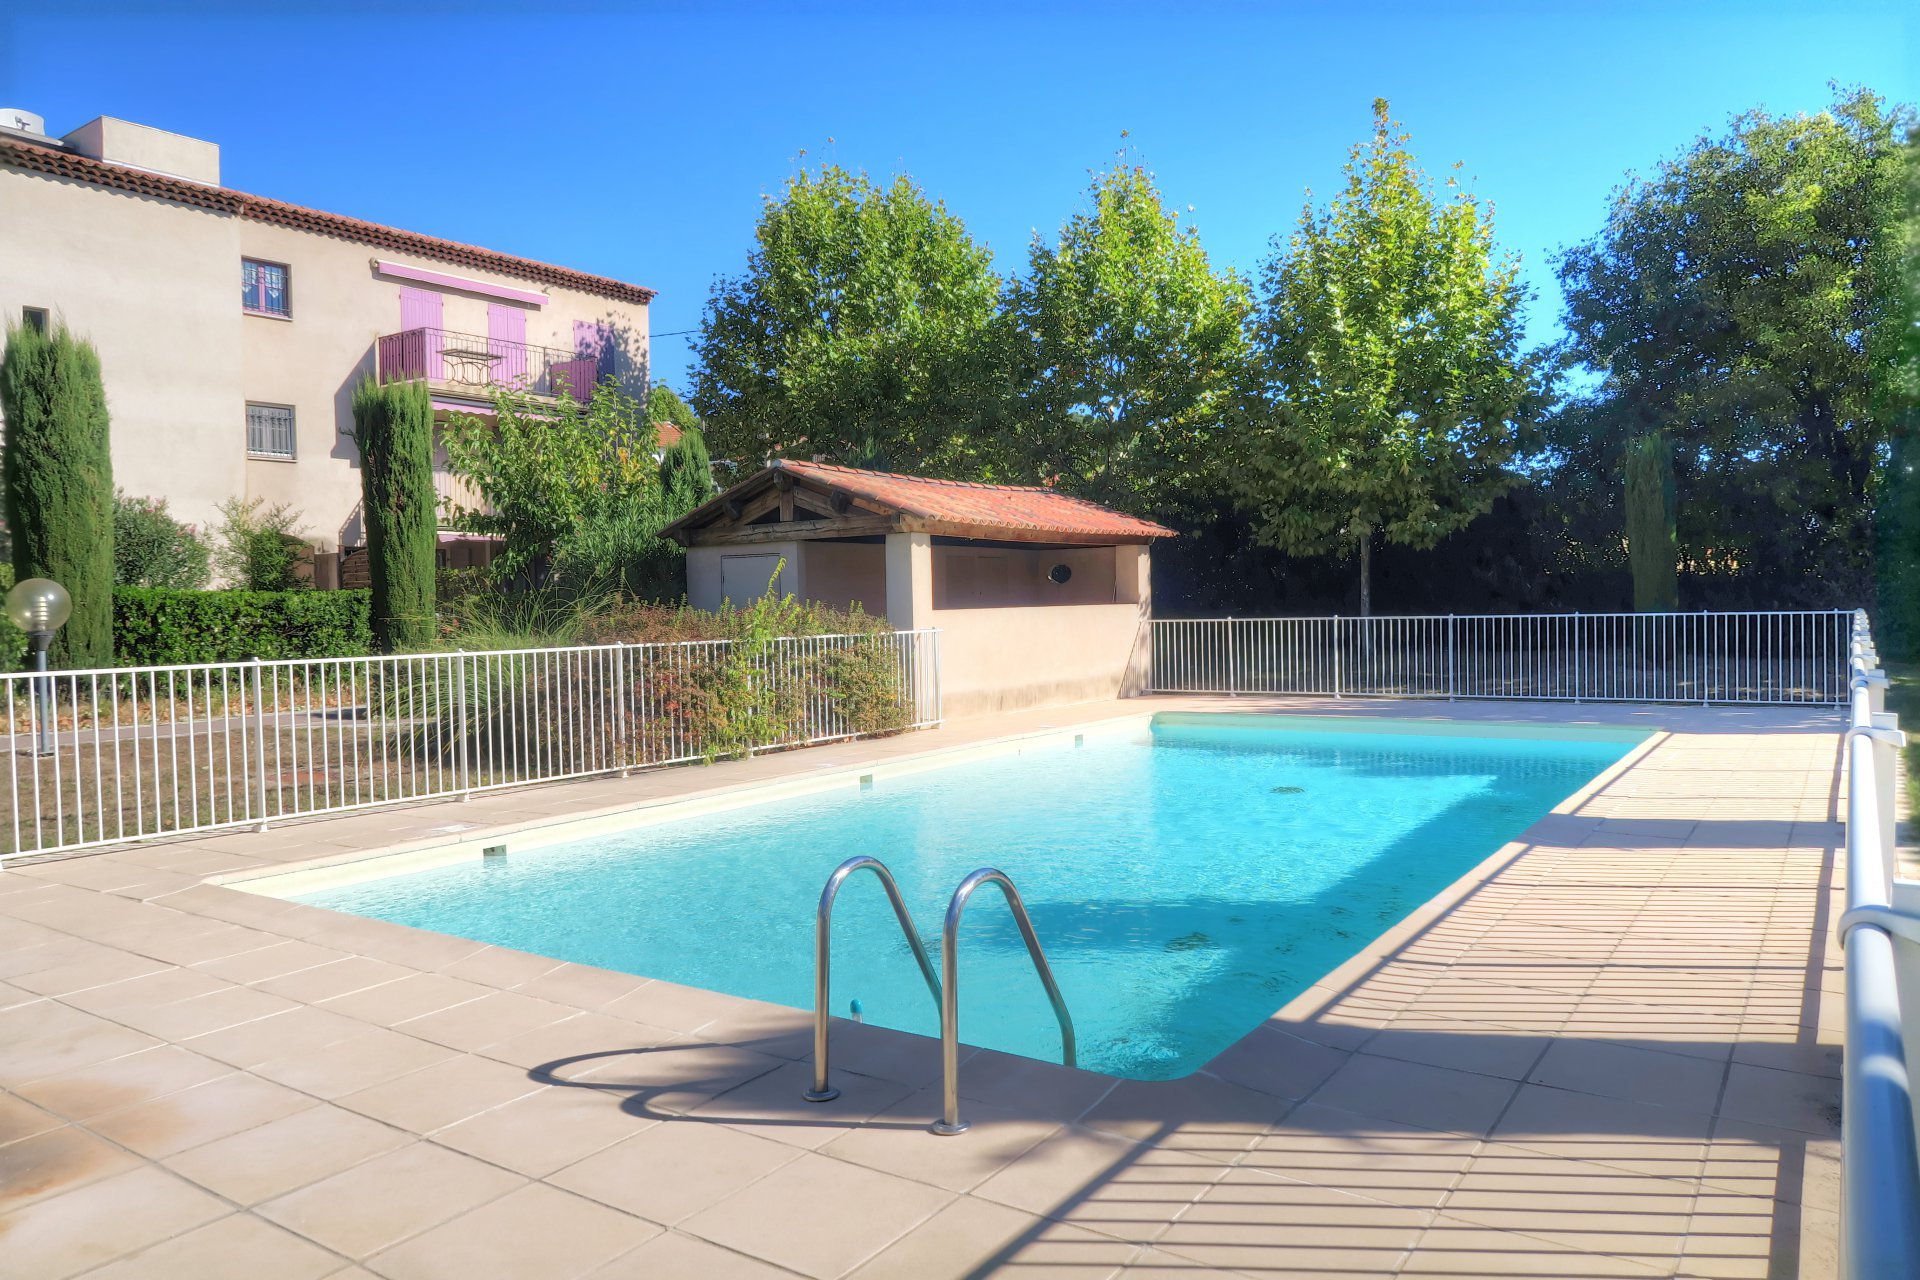 Spacious apartment in private residence with pool in Lorgues